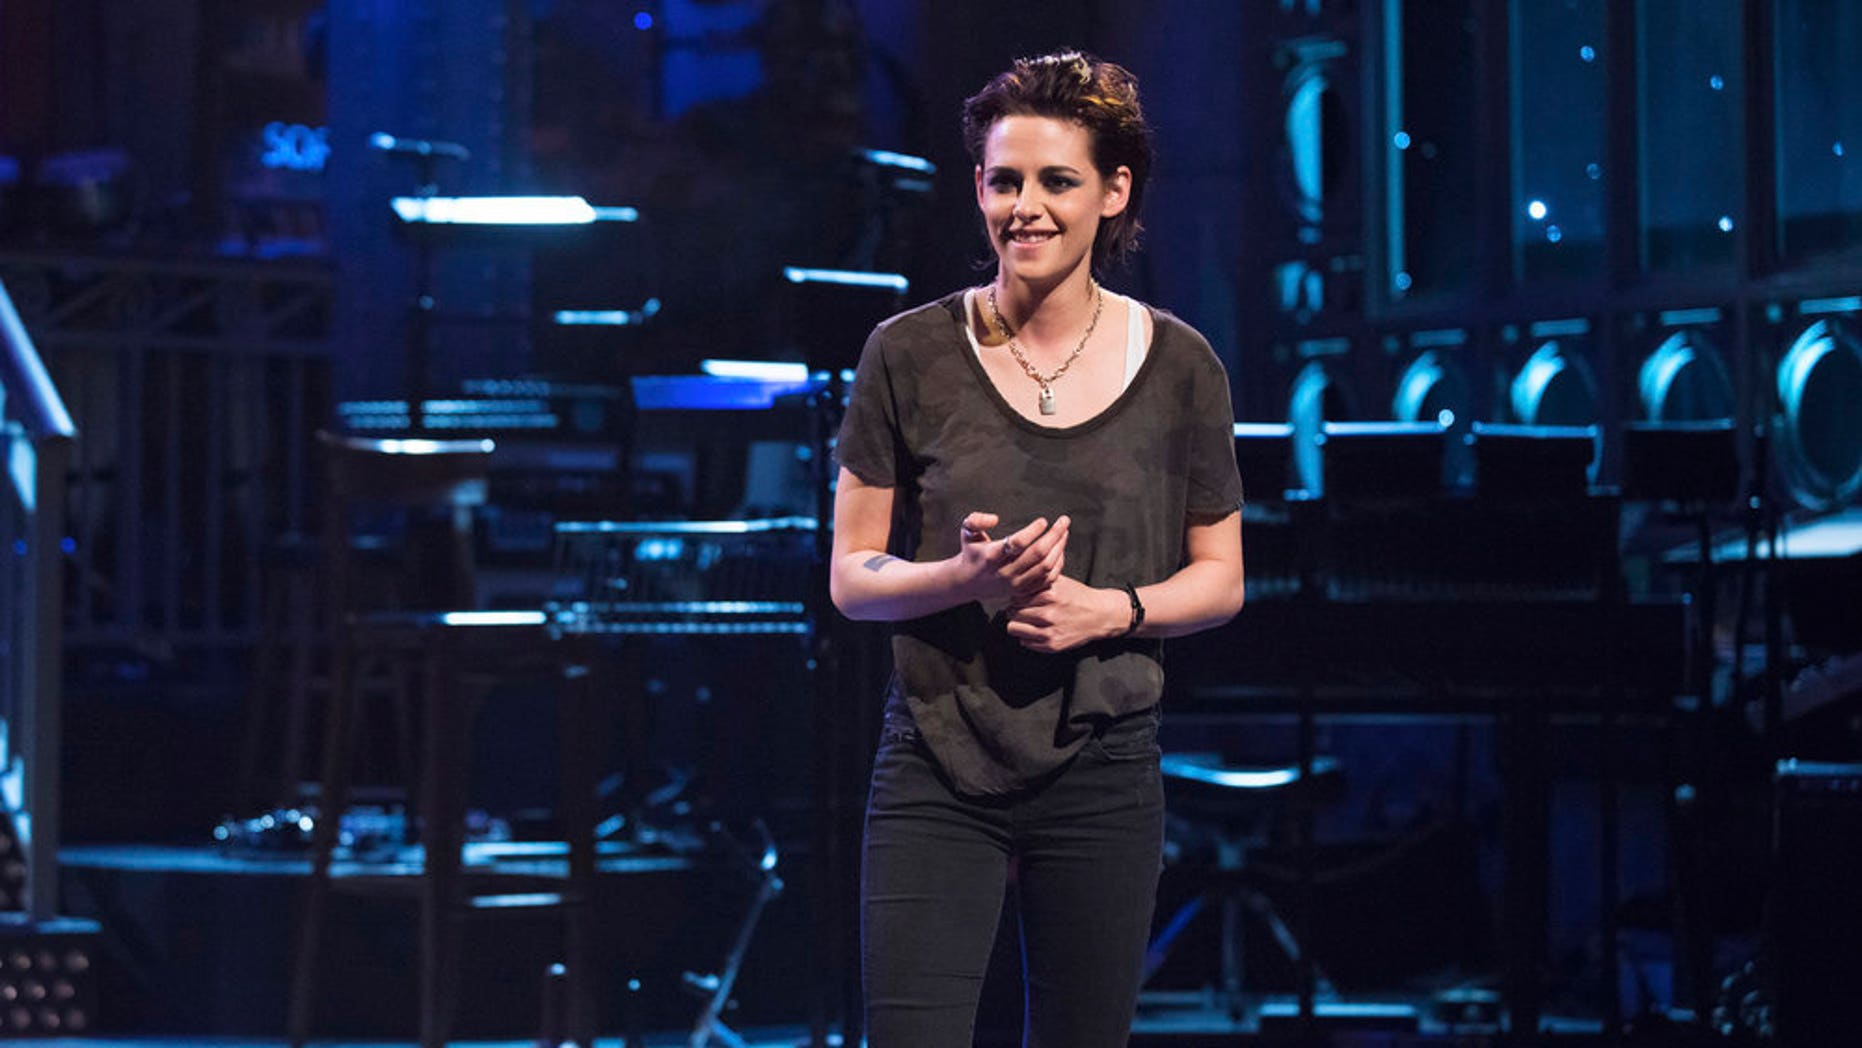 """Kristen Stewart dropped the F-bomb while hosting """"Saturday Night Live"""""""